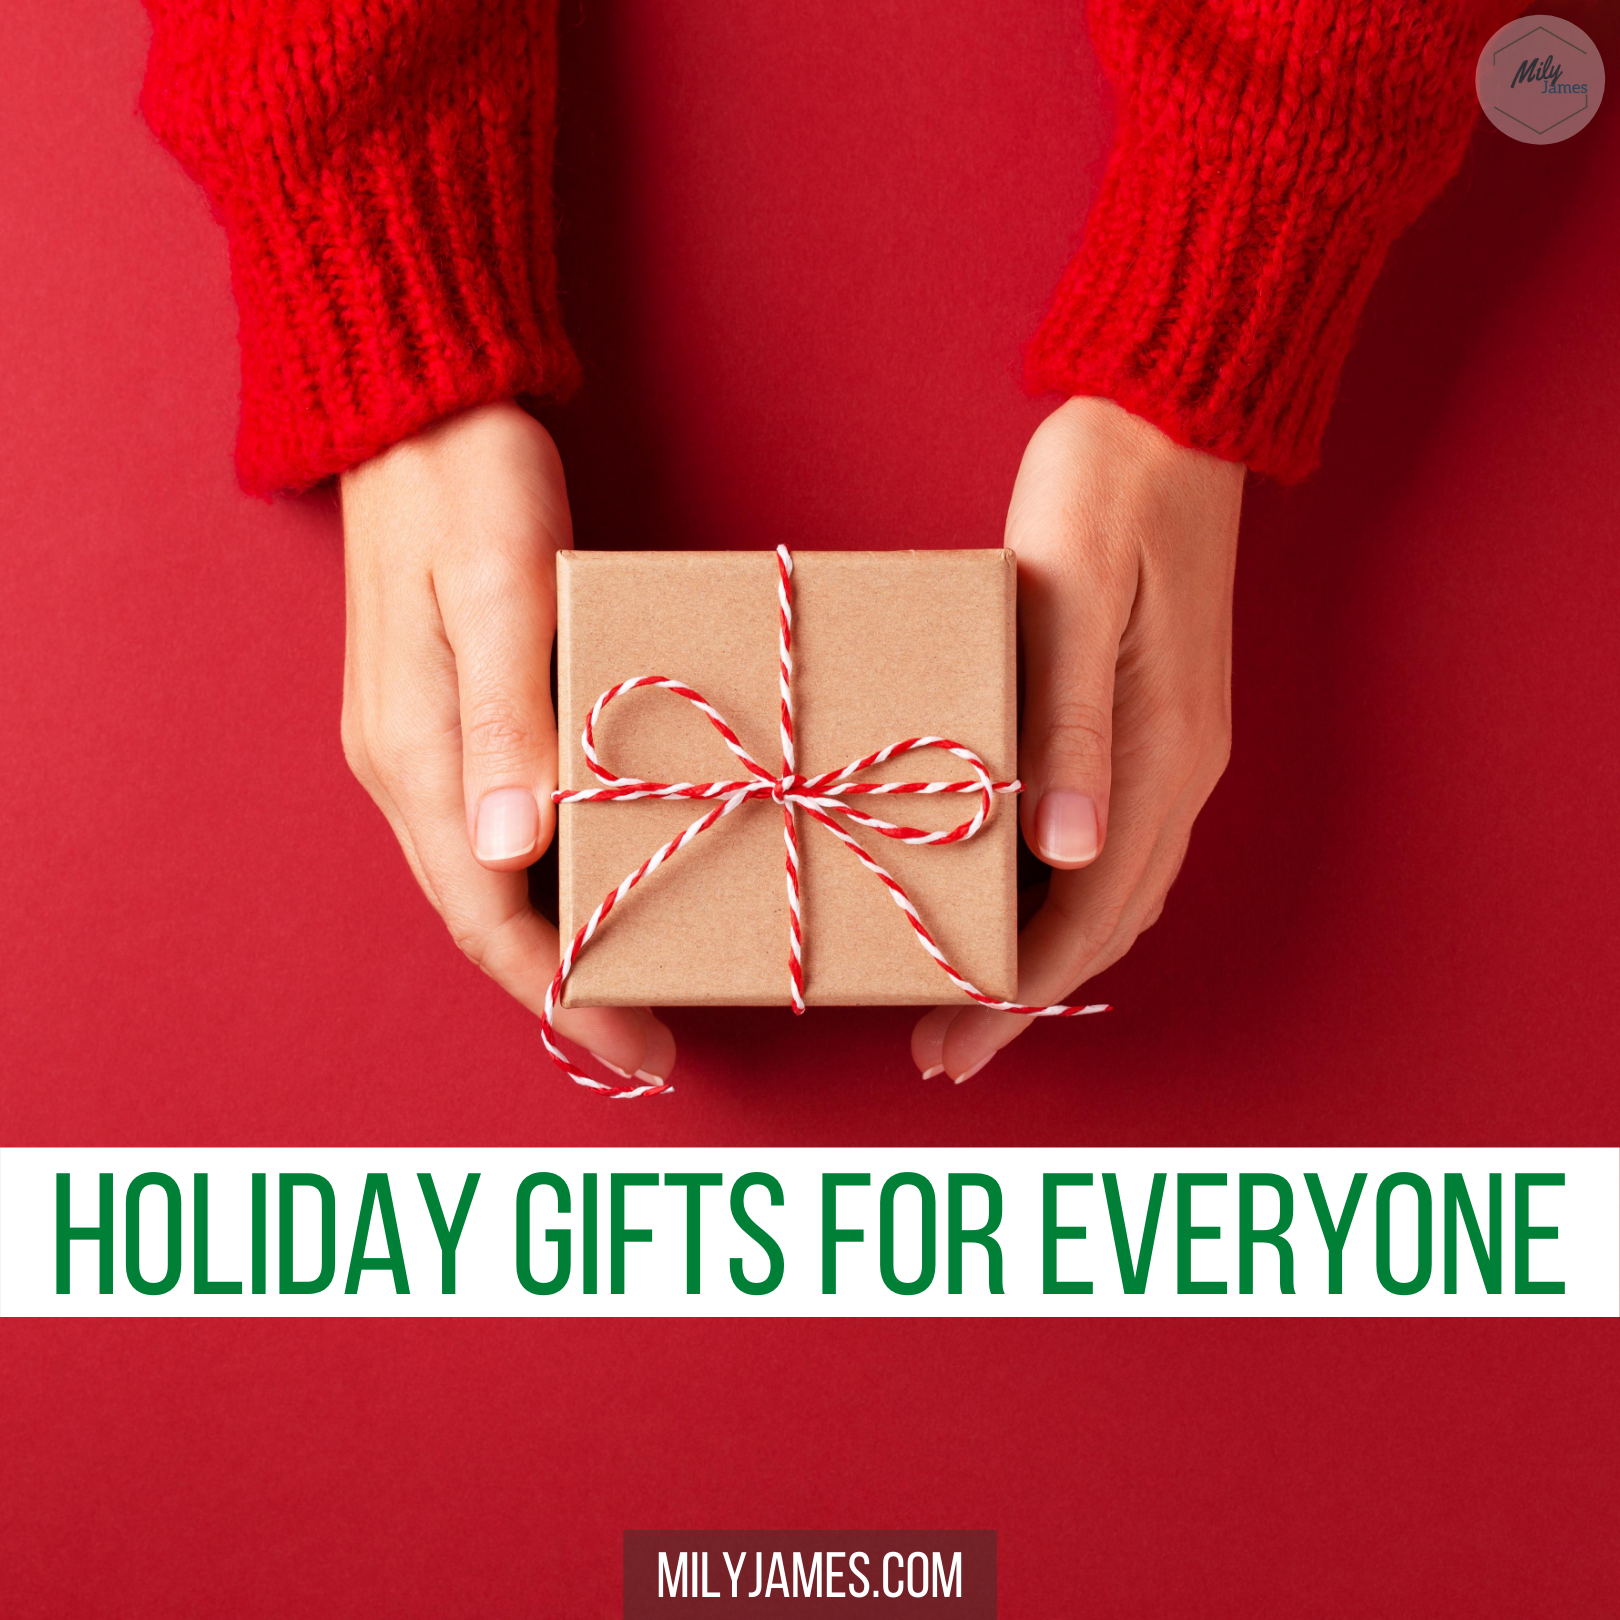 It's never too early to start online shopping for Christmas. The holiday will be coming way faster than you realize. This board will give you ideas for gifts for everyone in your